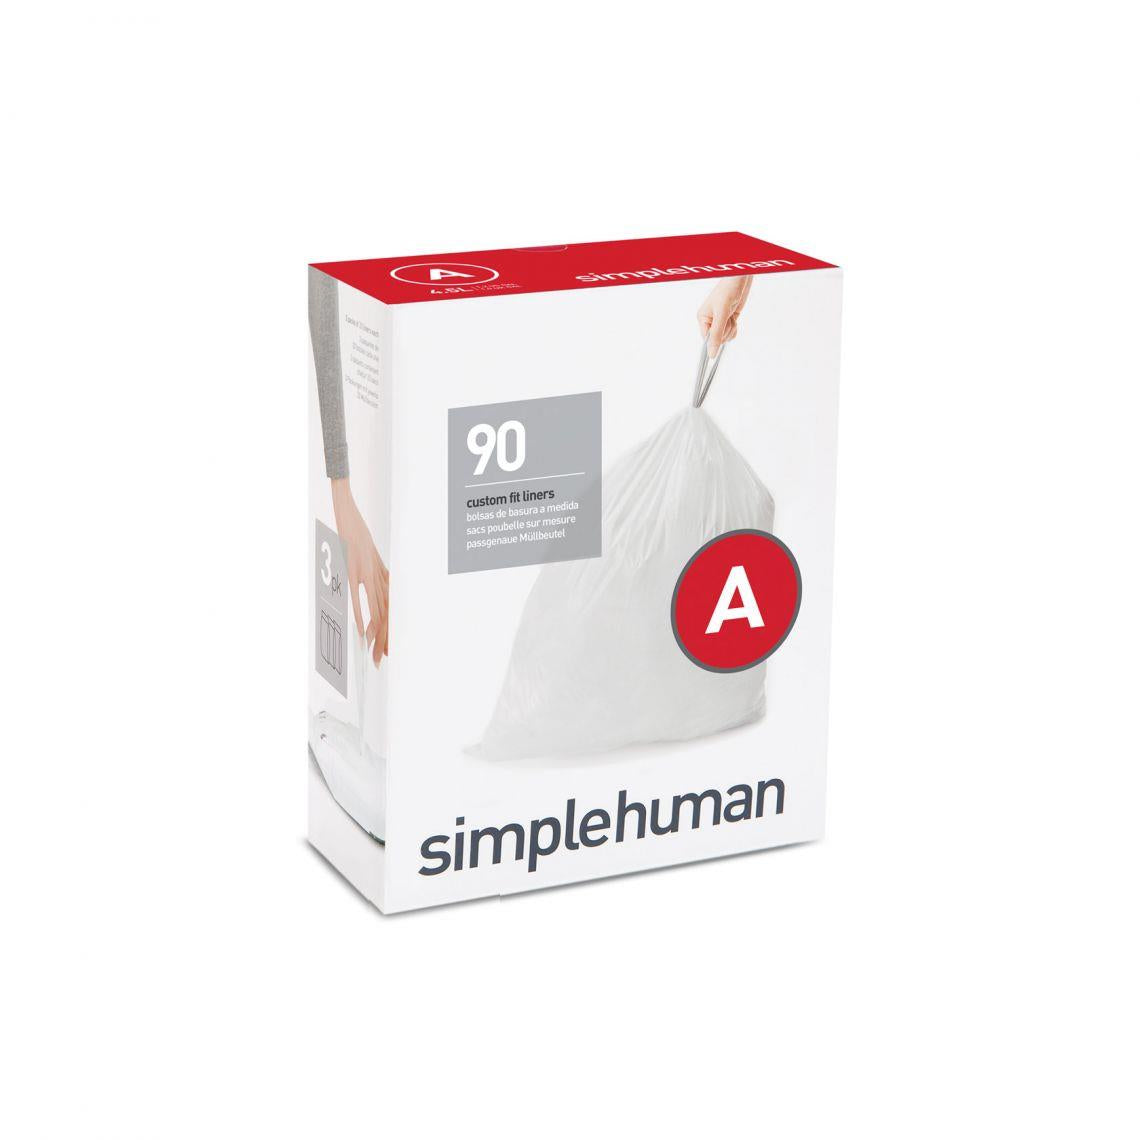 Simplehuman Code A Custom Fit Waste Liner, 4.5L